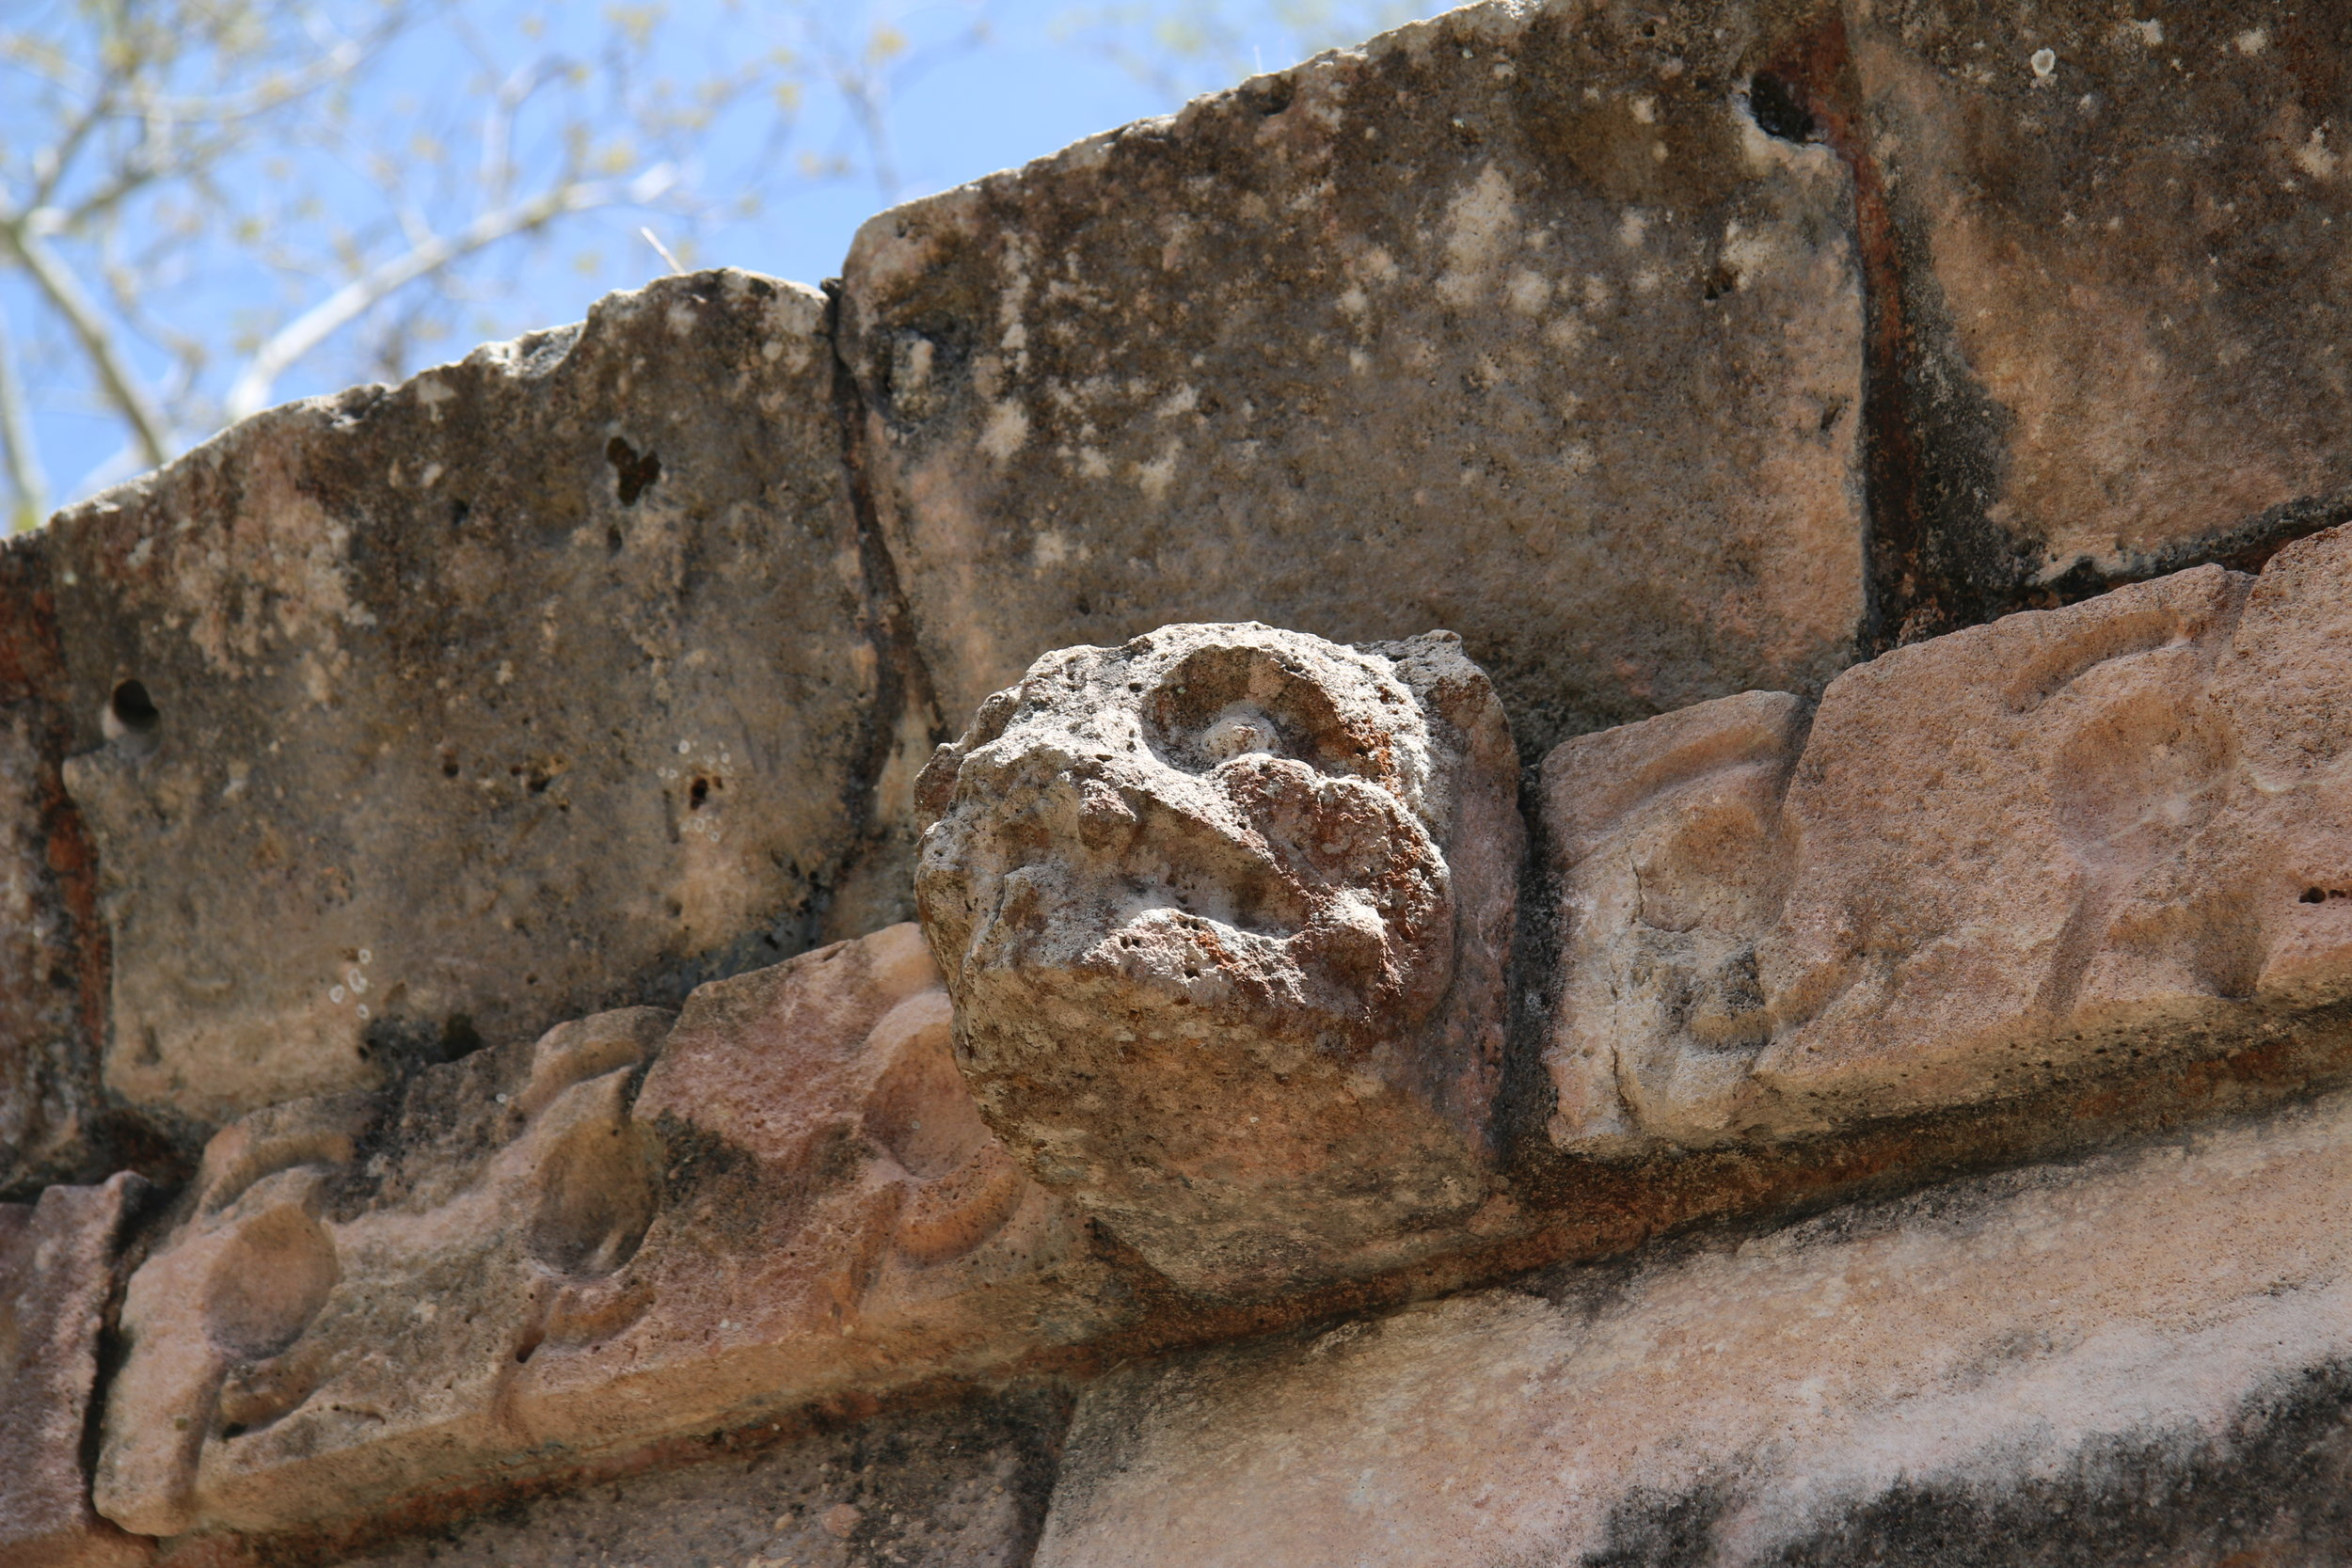 A jaguar head in stone